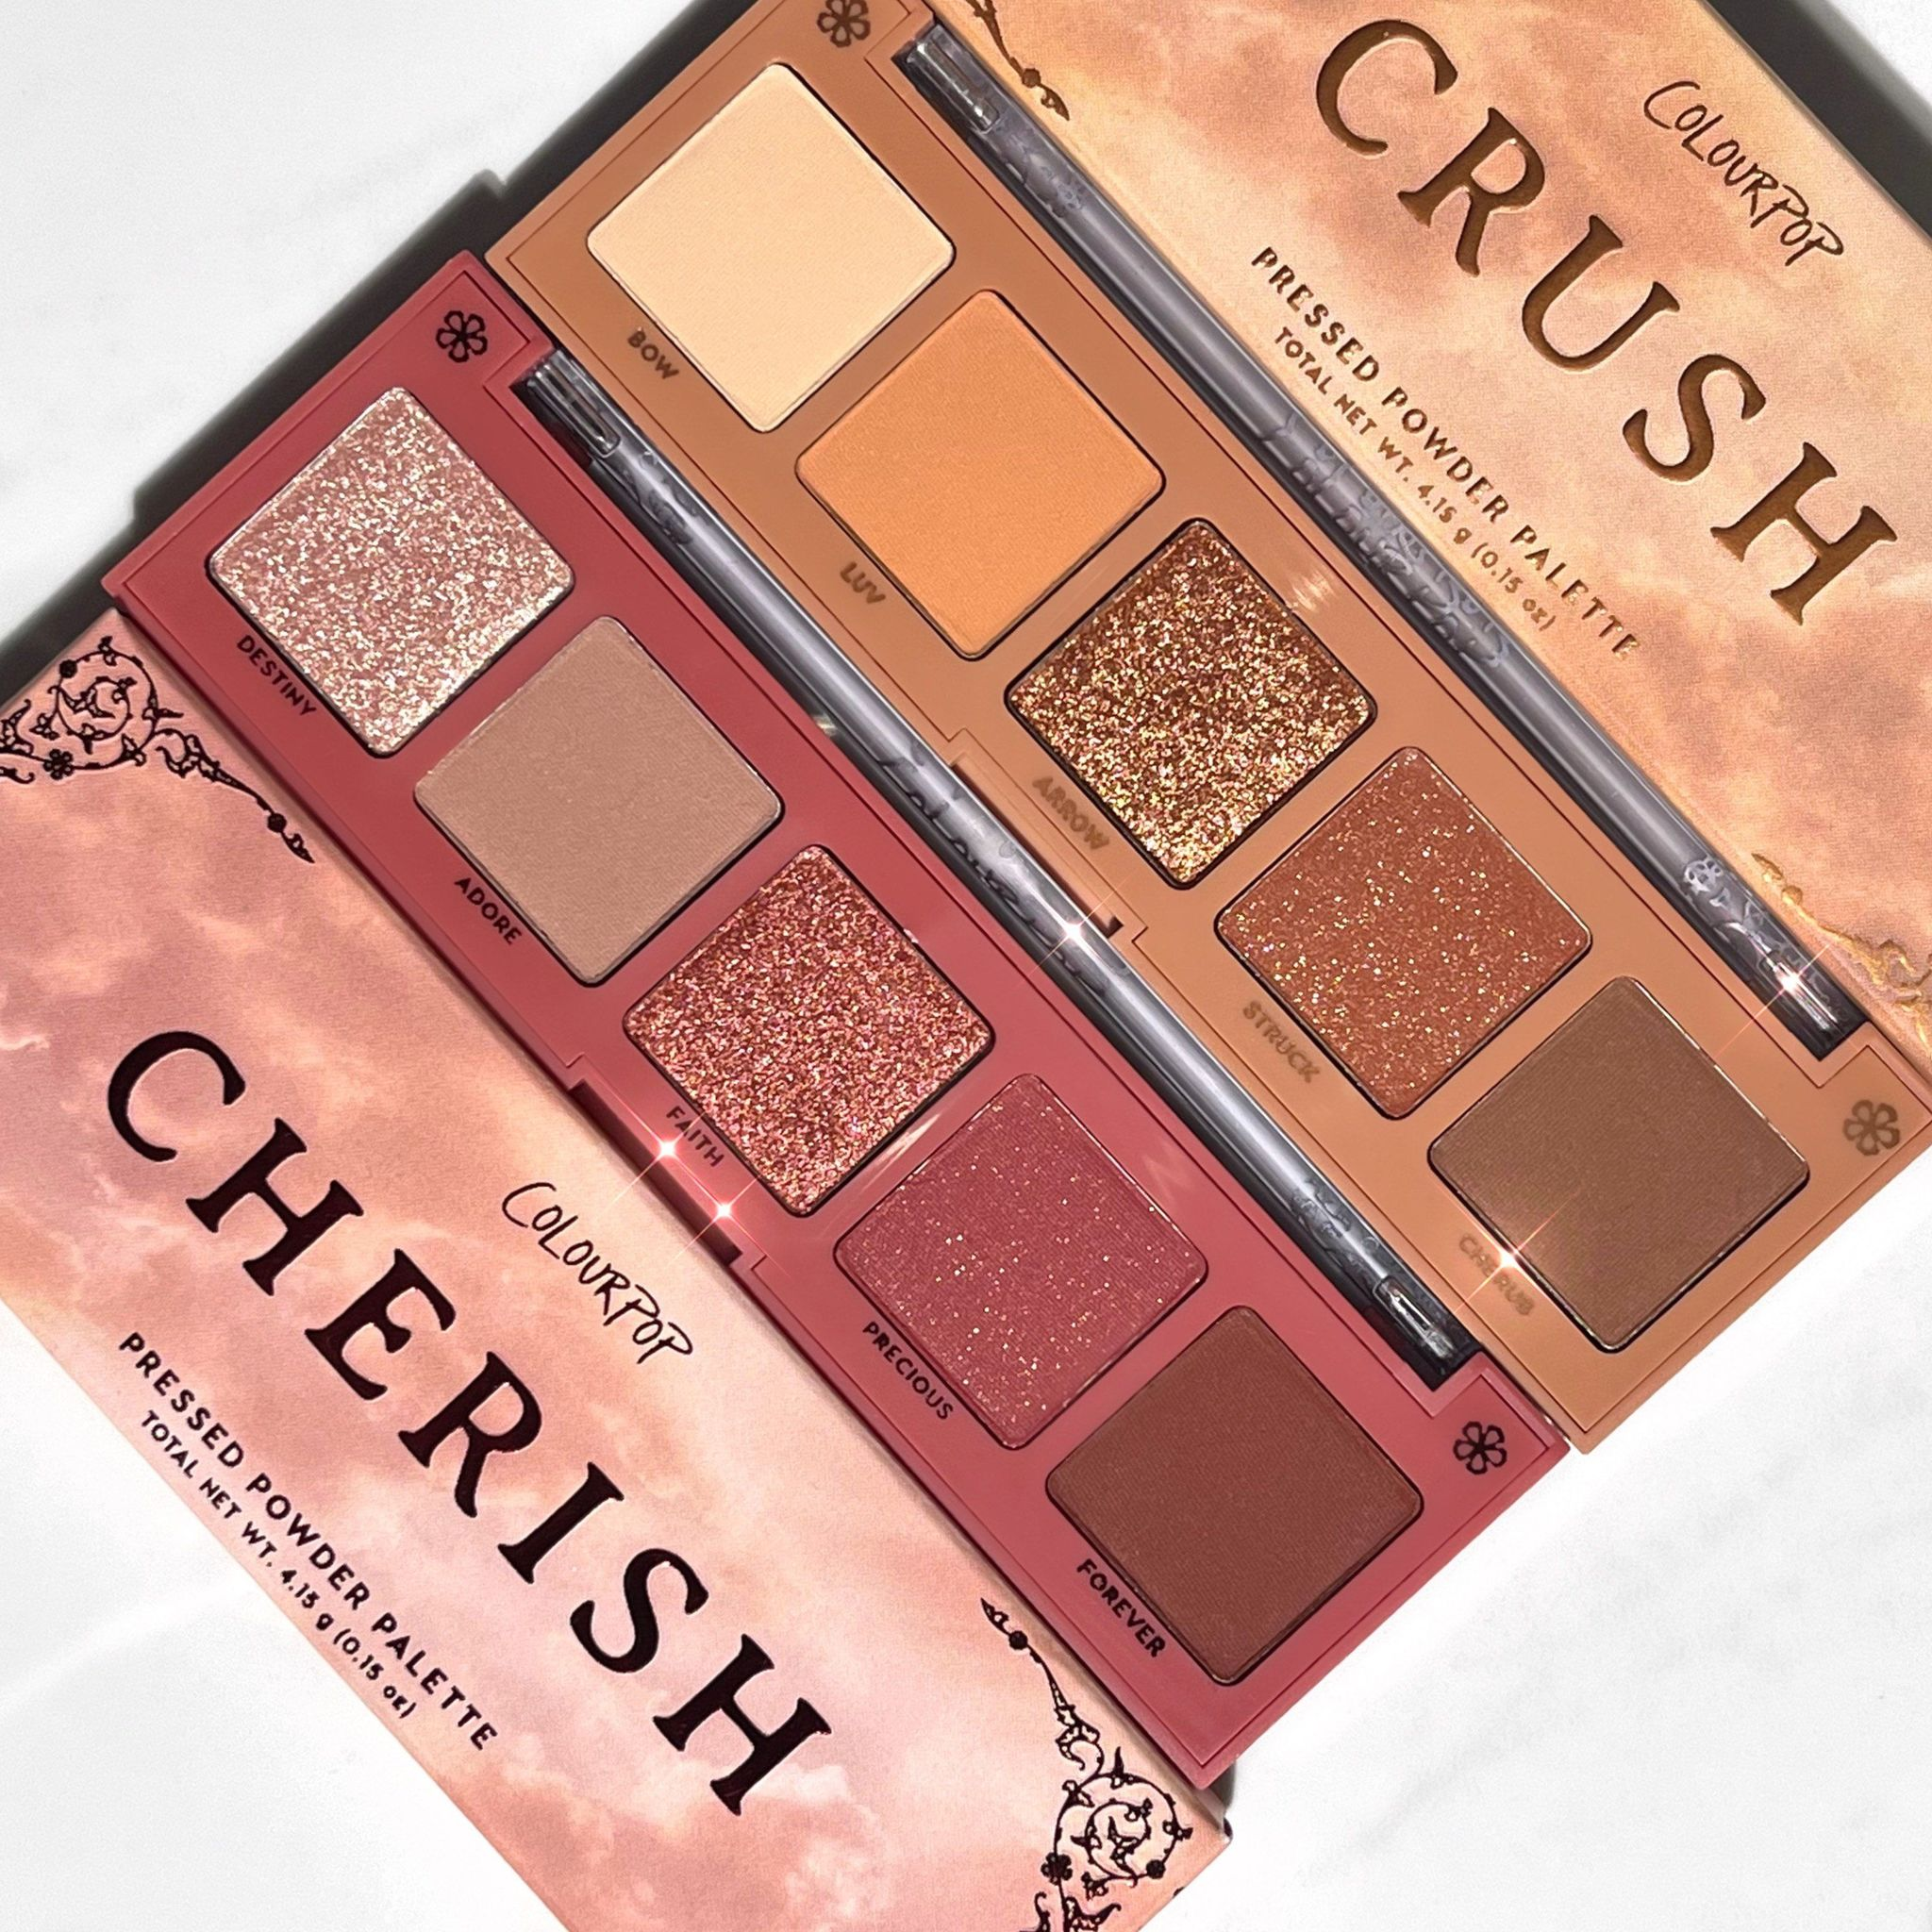 ColourPop Cherish palette